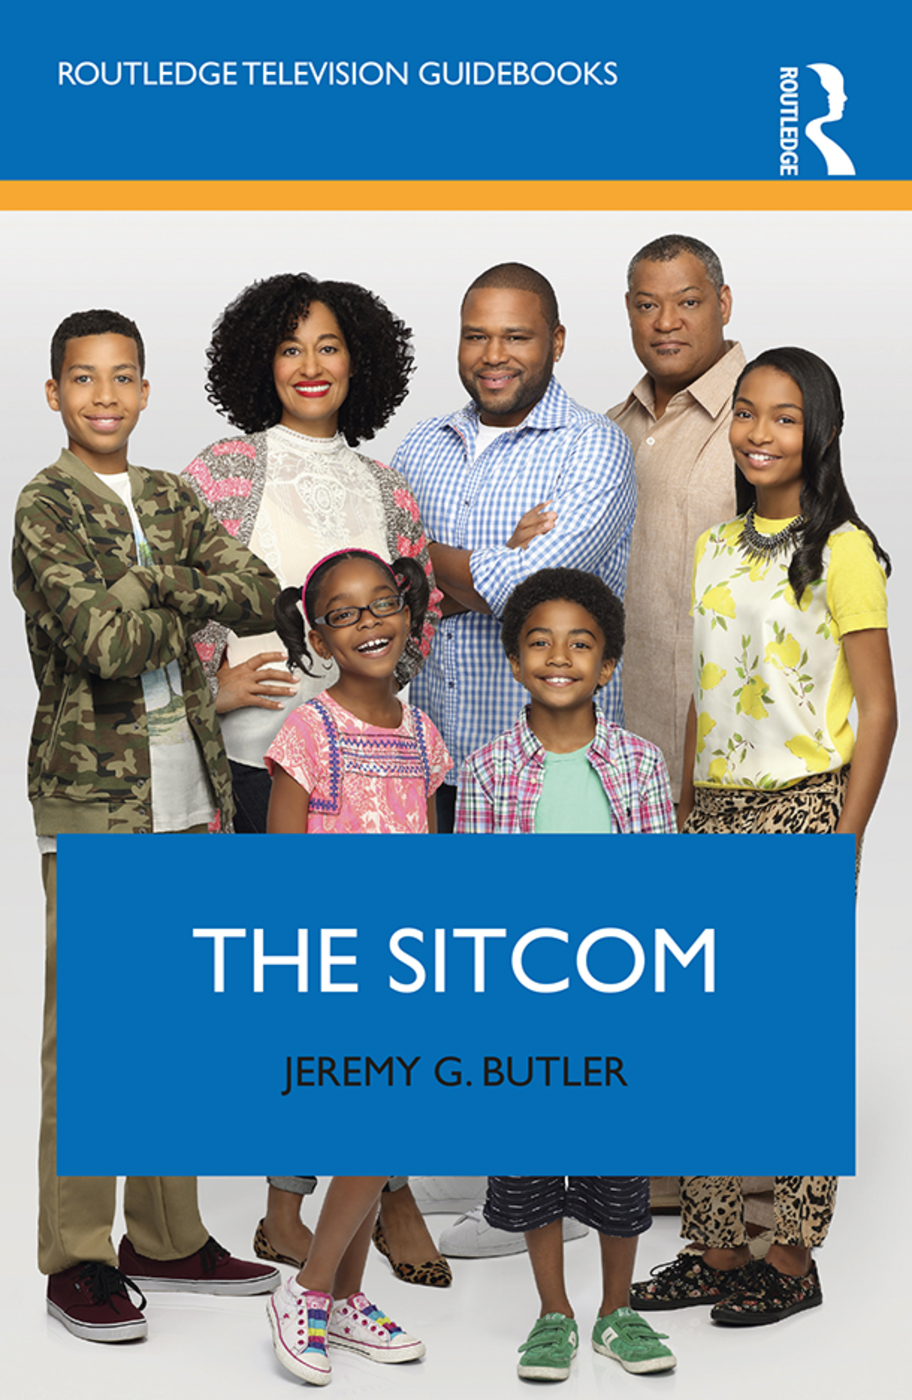 Front cover of THE SITCOM.